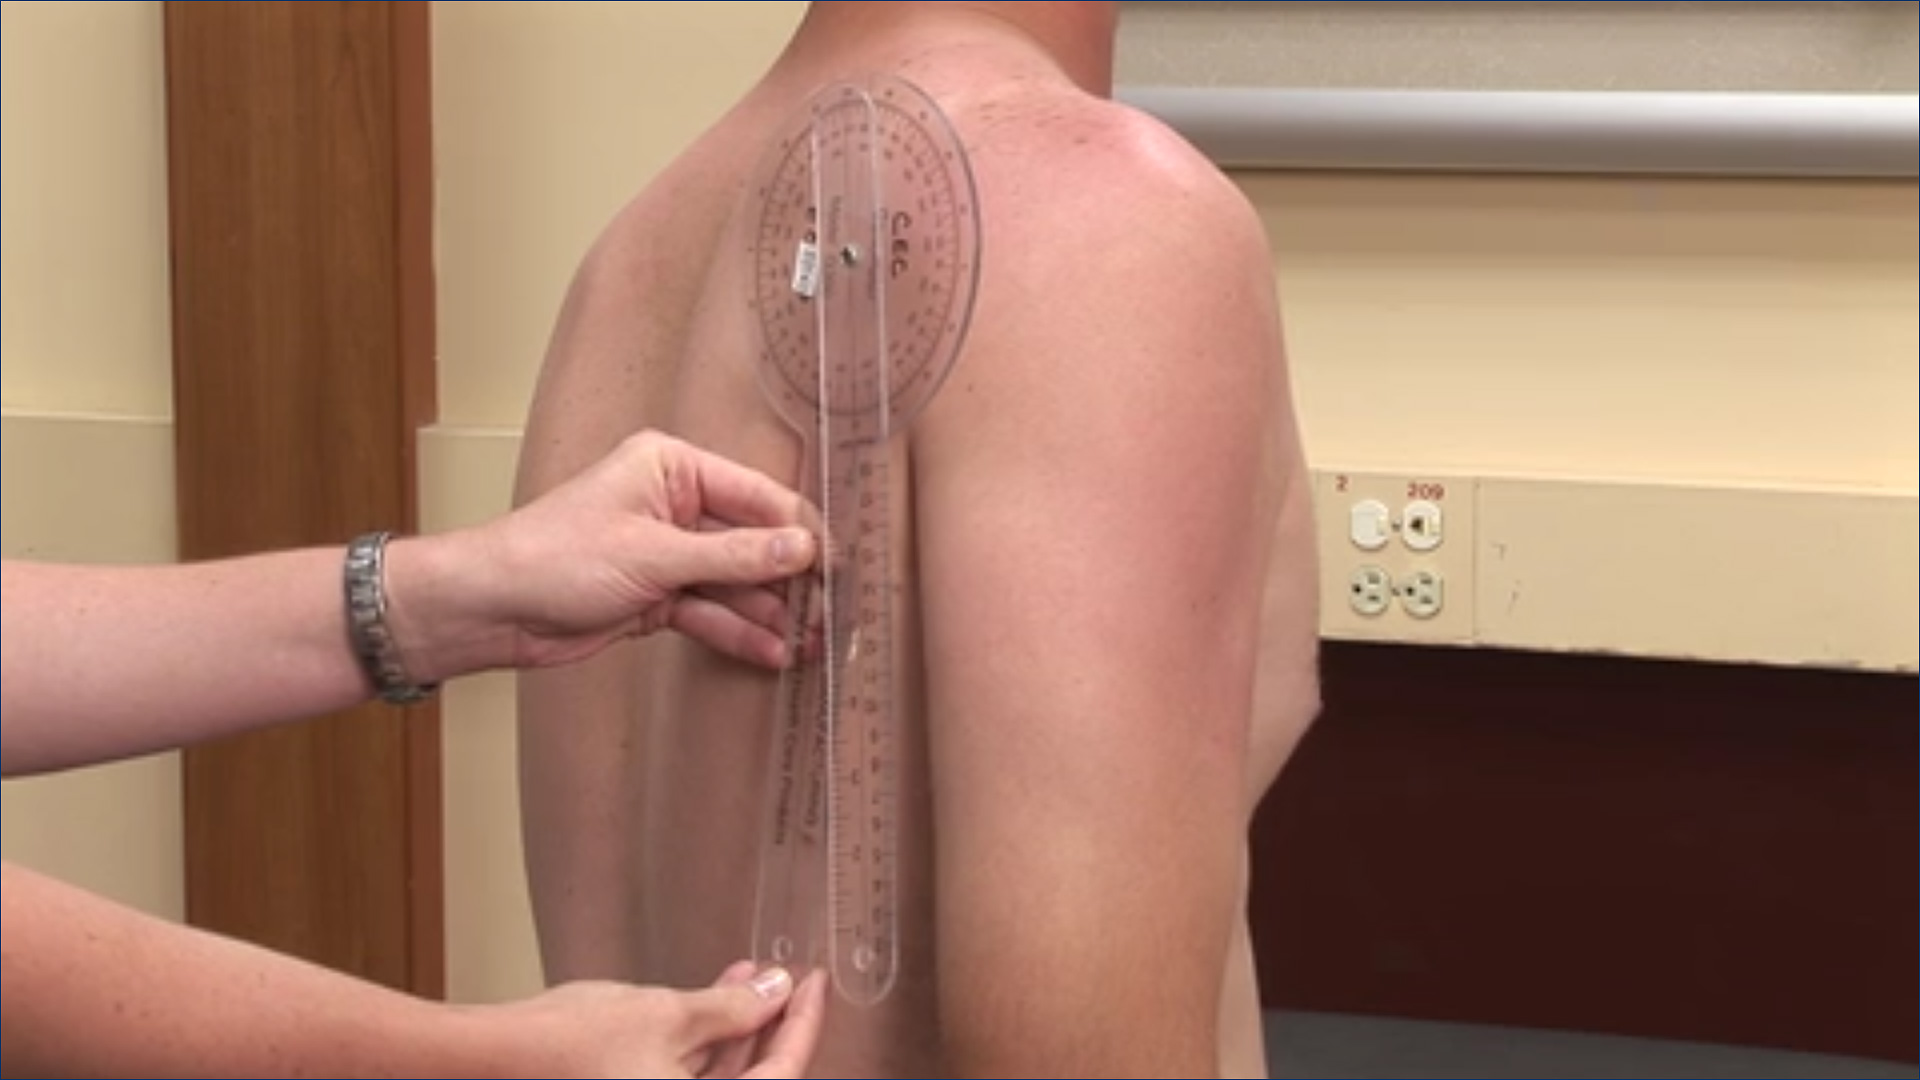 Video Title: Range of Motion and Manual Muscle Testing of the Upper Extremity Applied to Practice